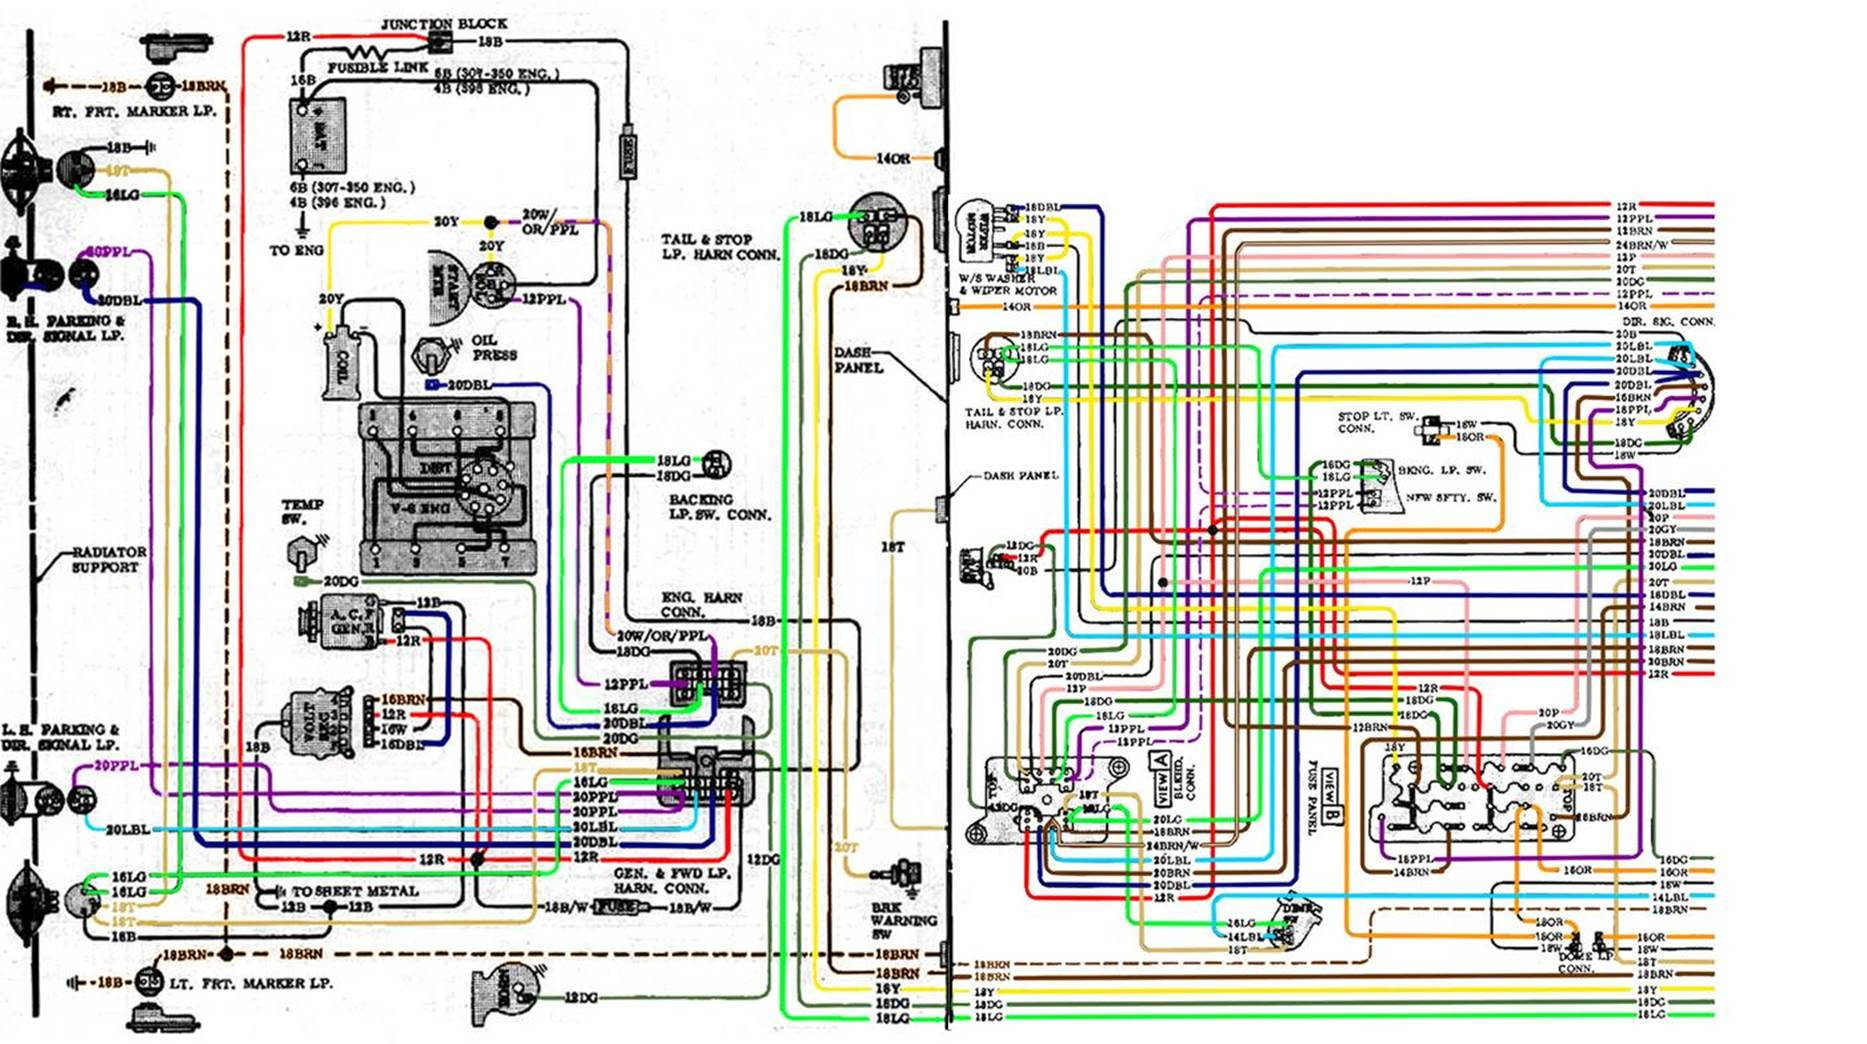 image002 1971 chevelle wiring diagram 1971 chevelle engine bay wiring 1972 chevelle wiring harness at mifinder.co